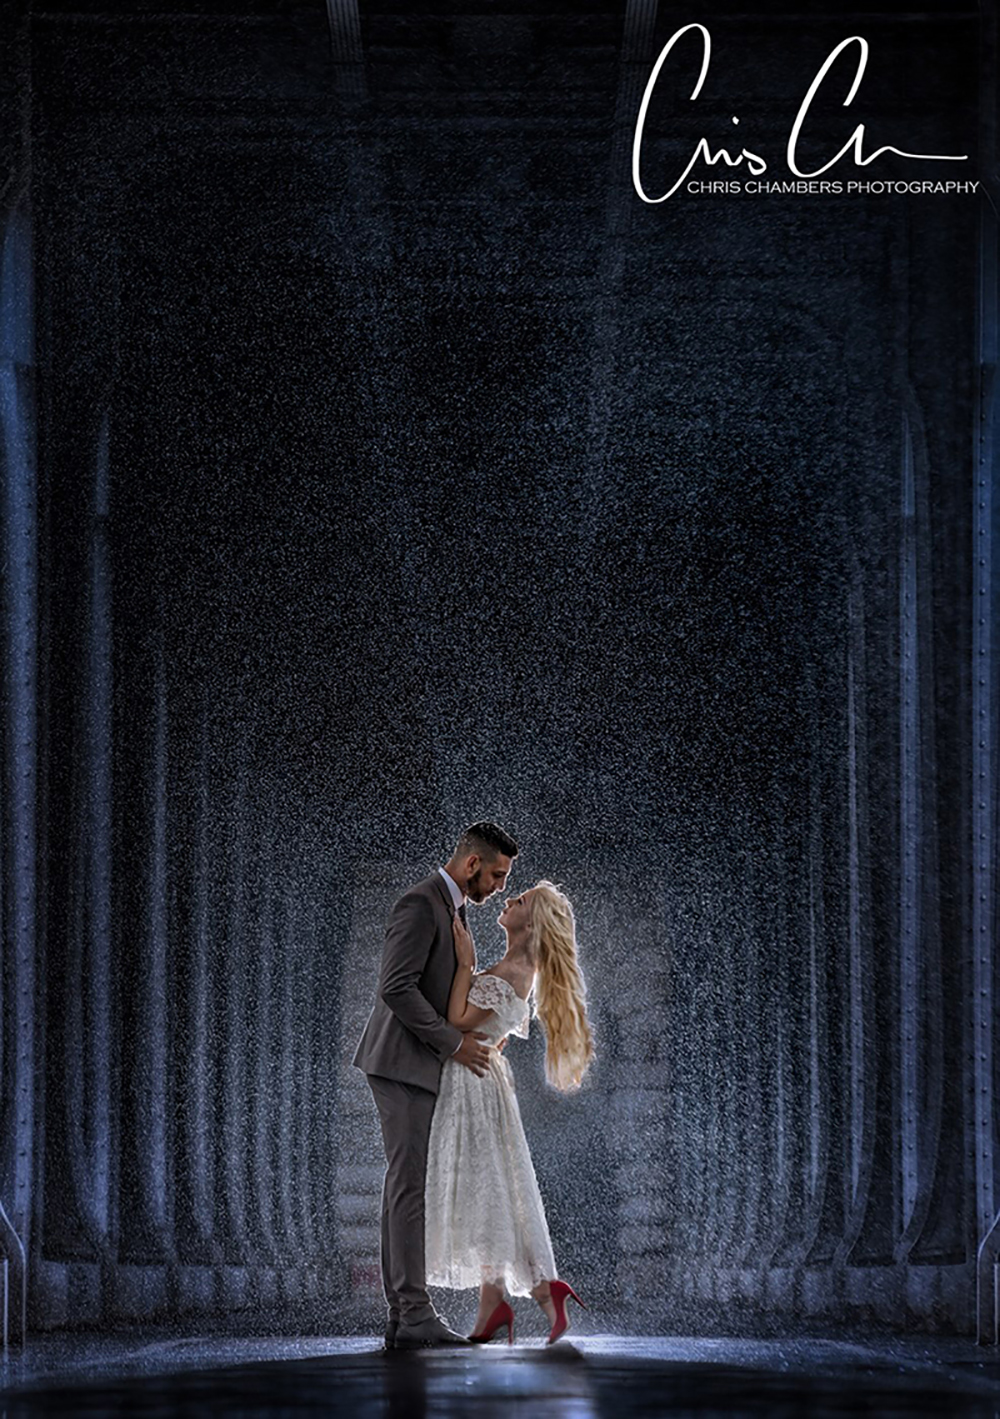 heavy rain on your wedding day. What to do when it rains on your wedding day